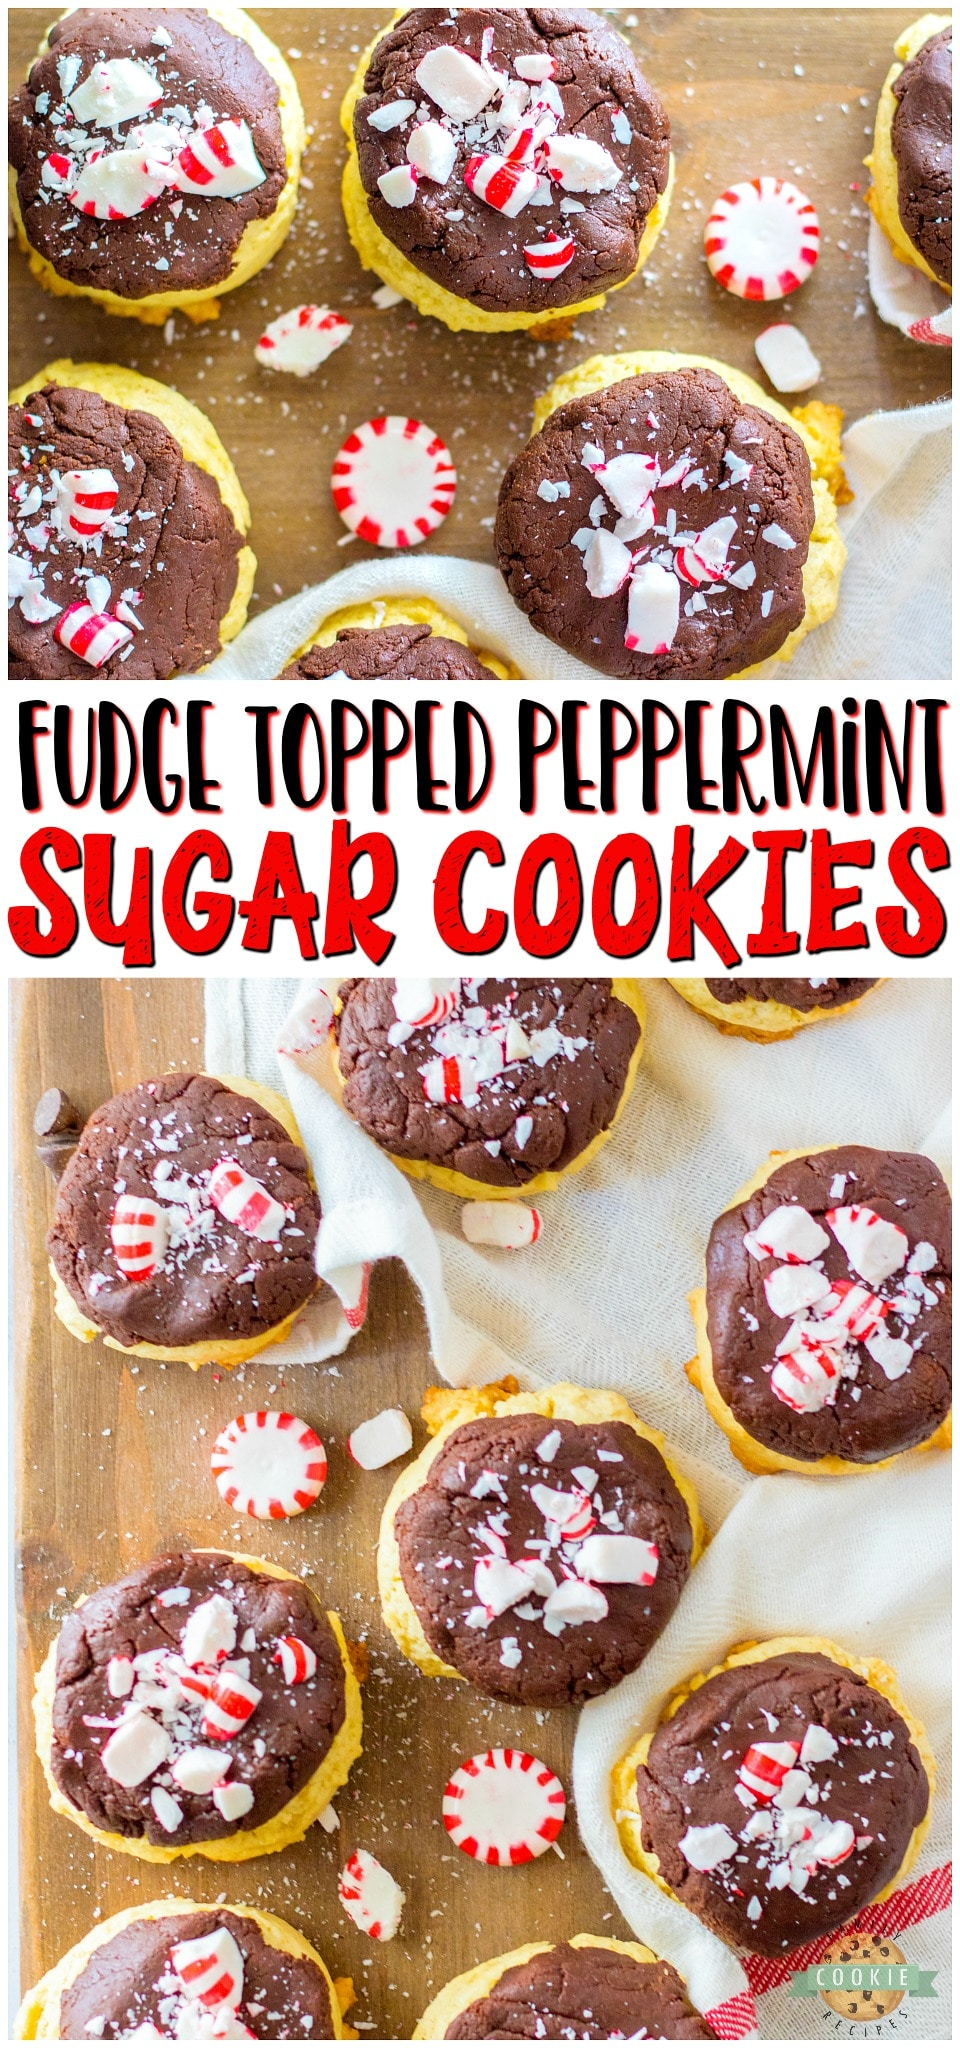 Peppermint Fudge Sugar Cookies are two favorites in one! Soft sugar cookies topped with a chocolate peppermint fudge & crushed candy canes for an over-the-top Christmas treat! #cookies #fudge #peppermint #baking #christmas #easyrecipe from BUTTER WITH A SIDE OF BREAD via @familycookierecipes